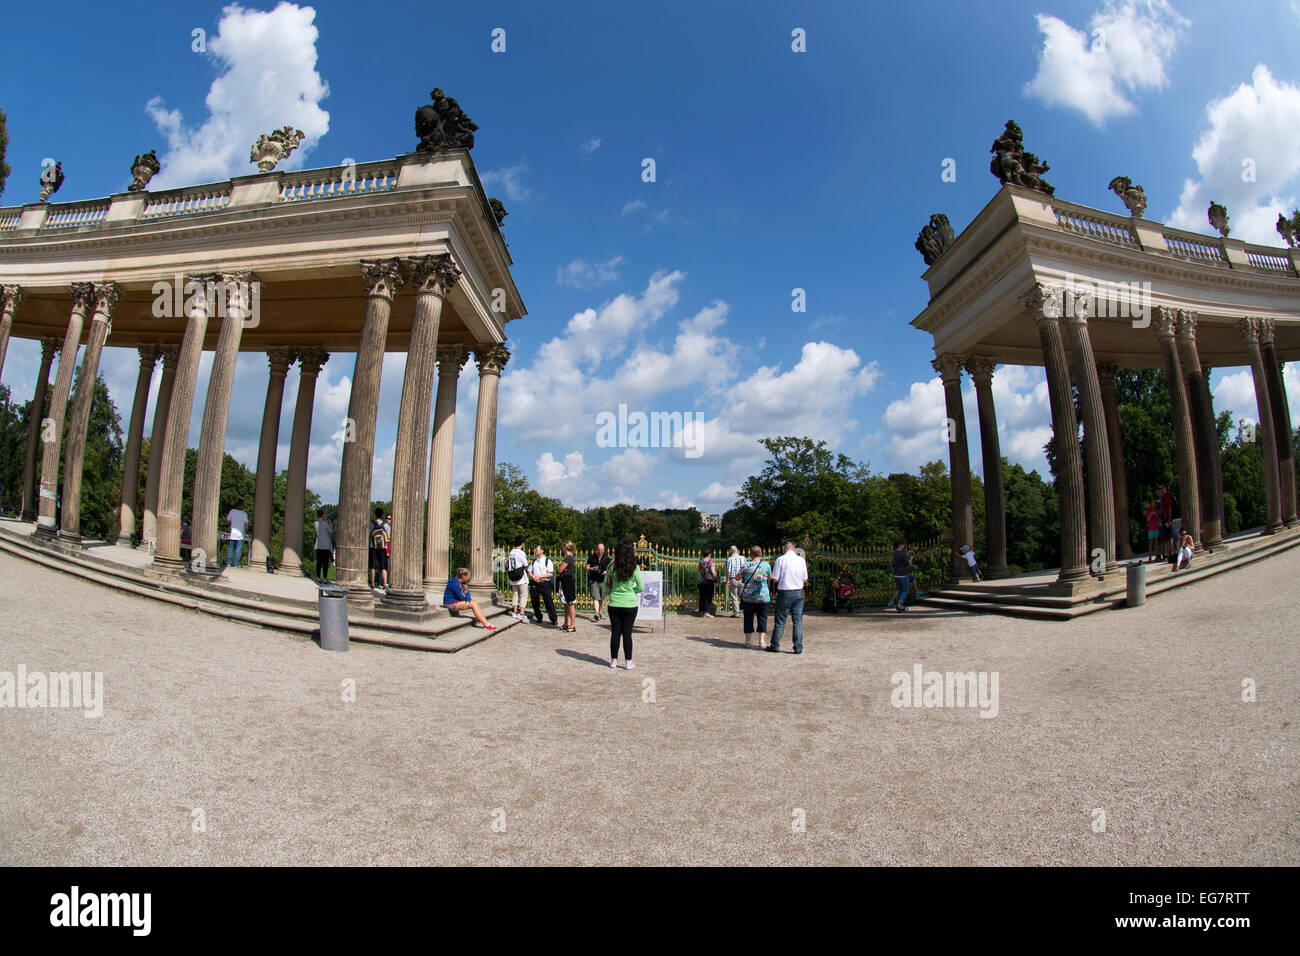 Two segmented colonnades of Sanssouci Palace, Potsdam, Germany, Europe. Stock Photo